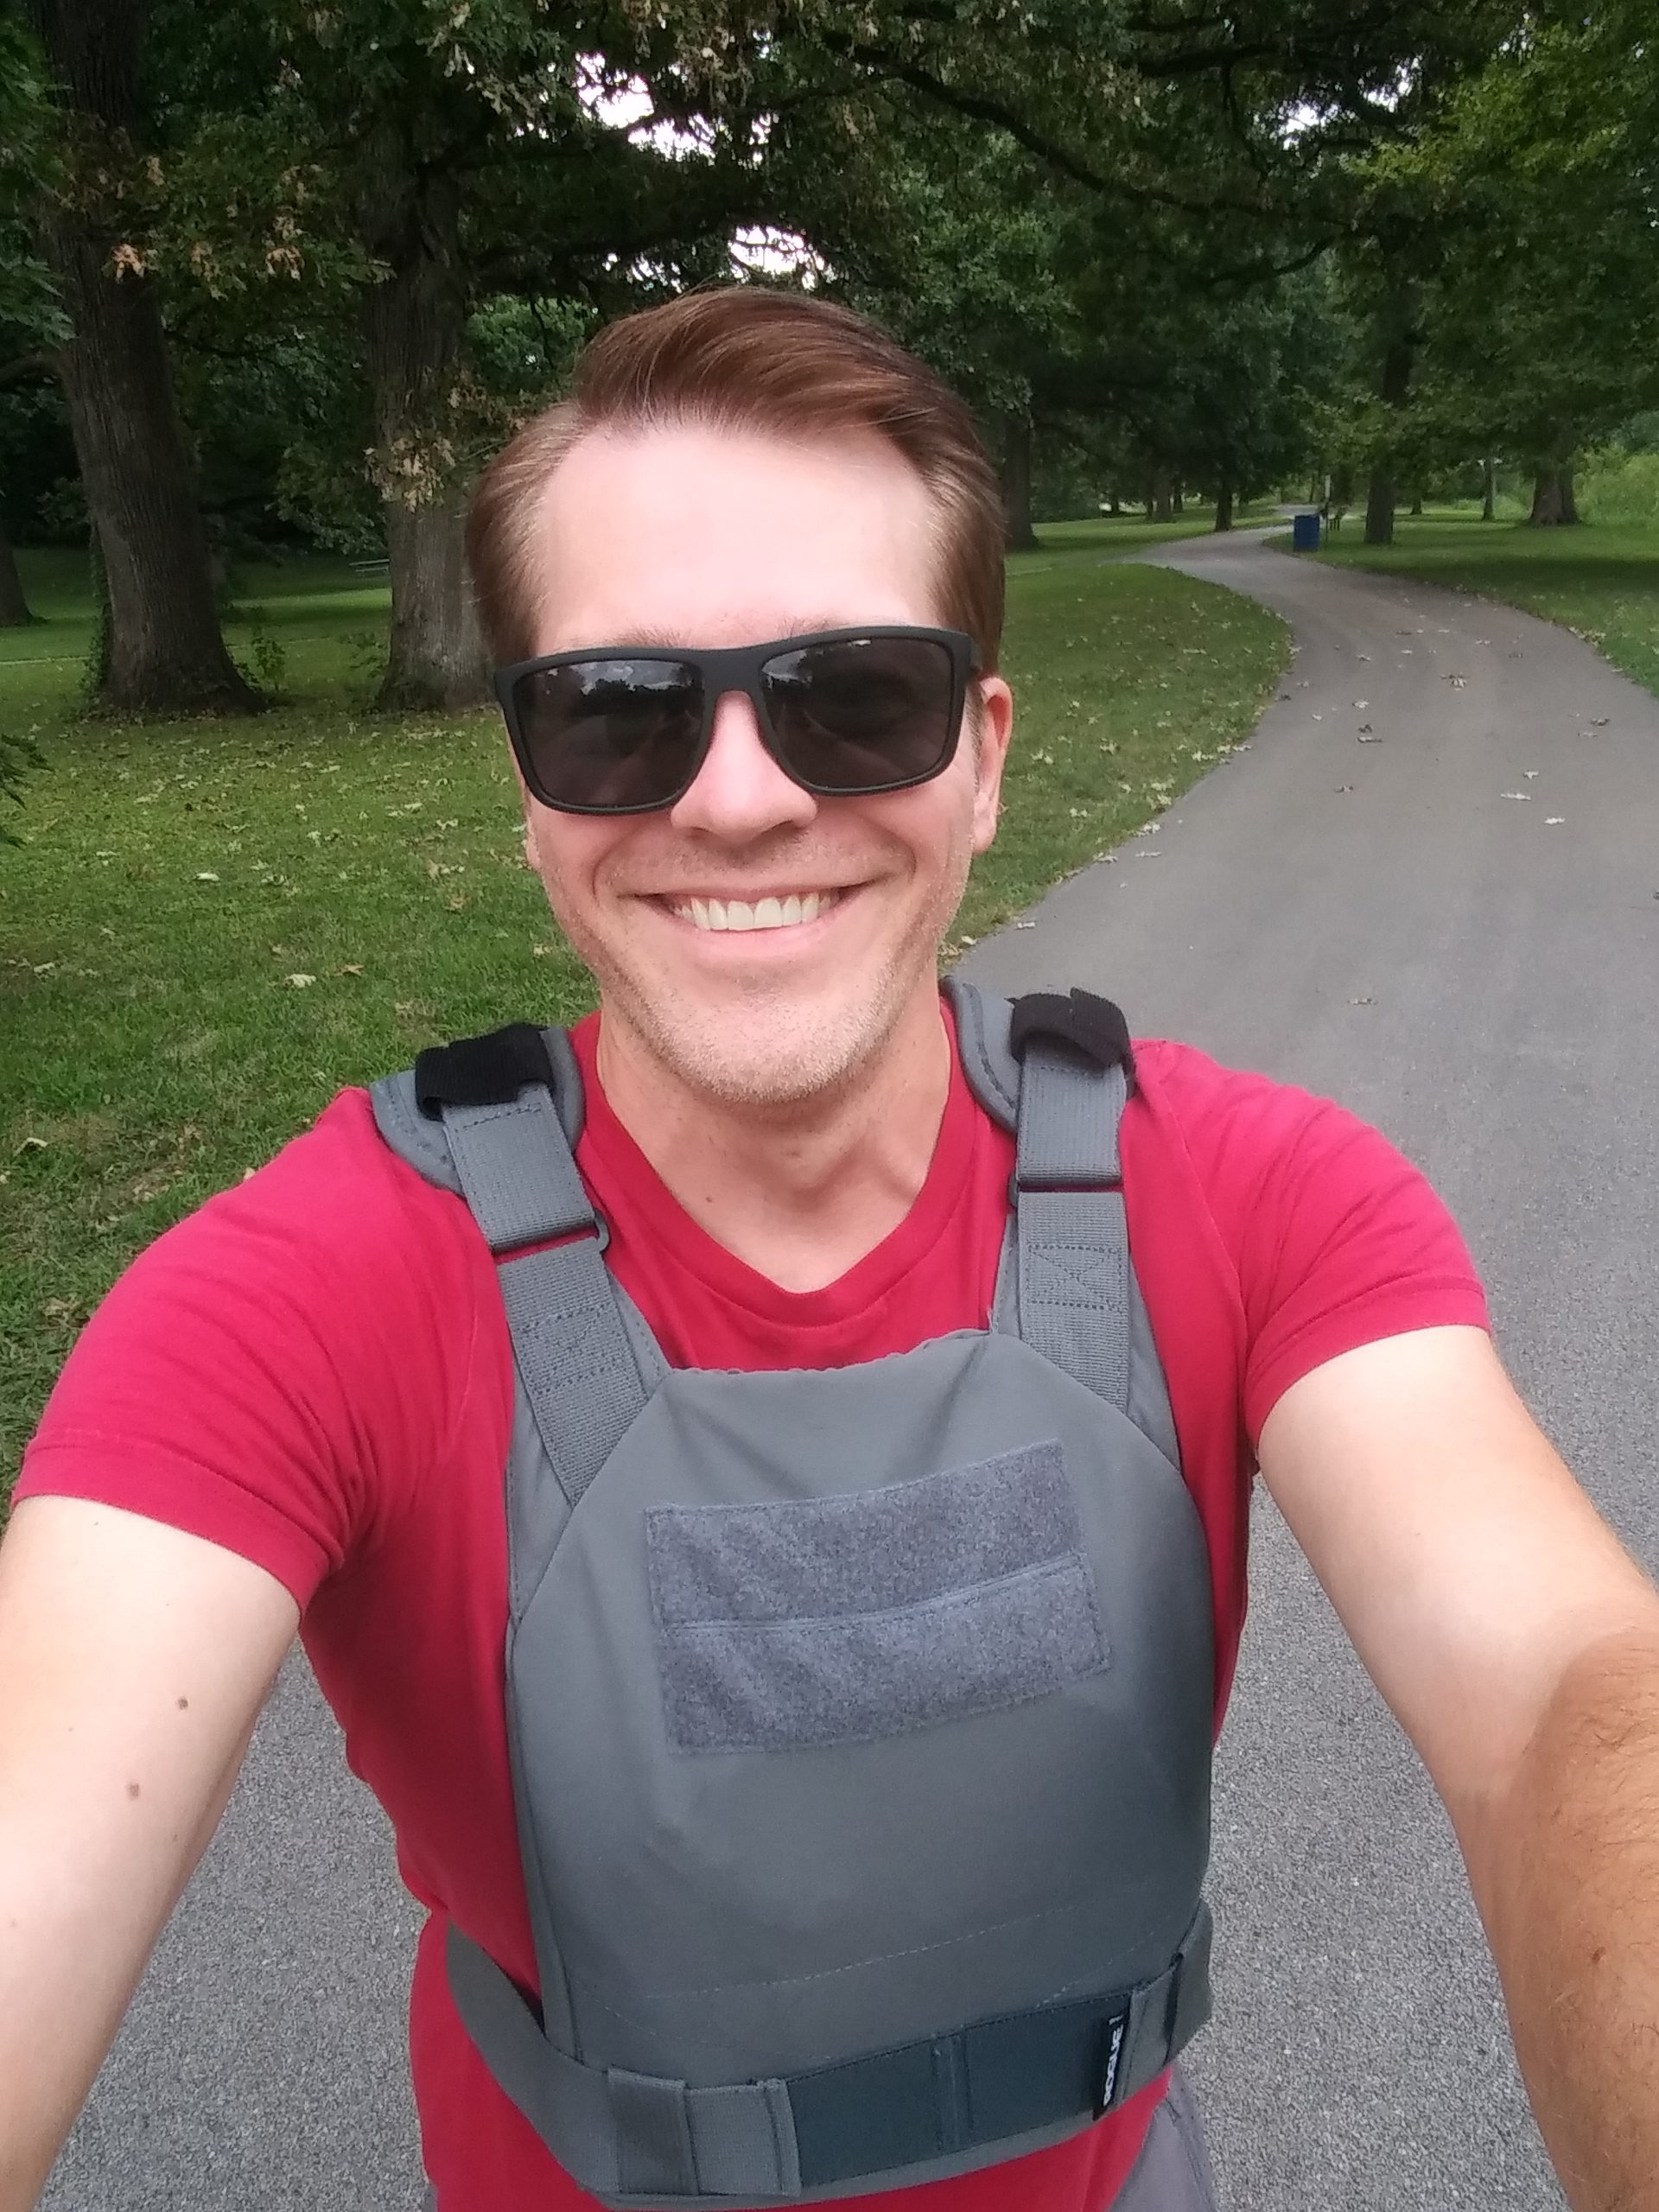 Christopher-Blakeslee-Functional-Health-Coach-Chronic-Pain-Weighted-Vest-Exercise September 2021 Health Update